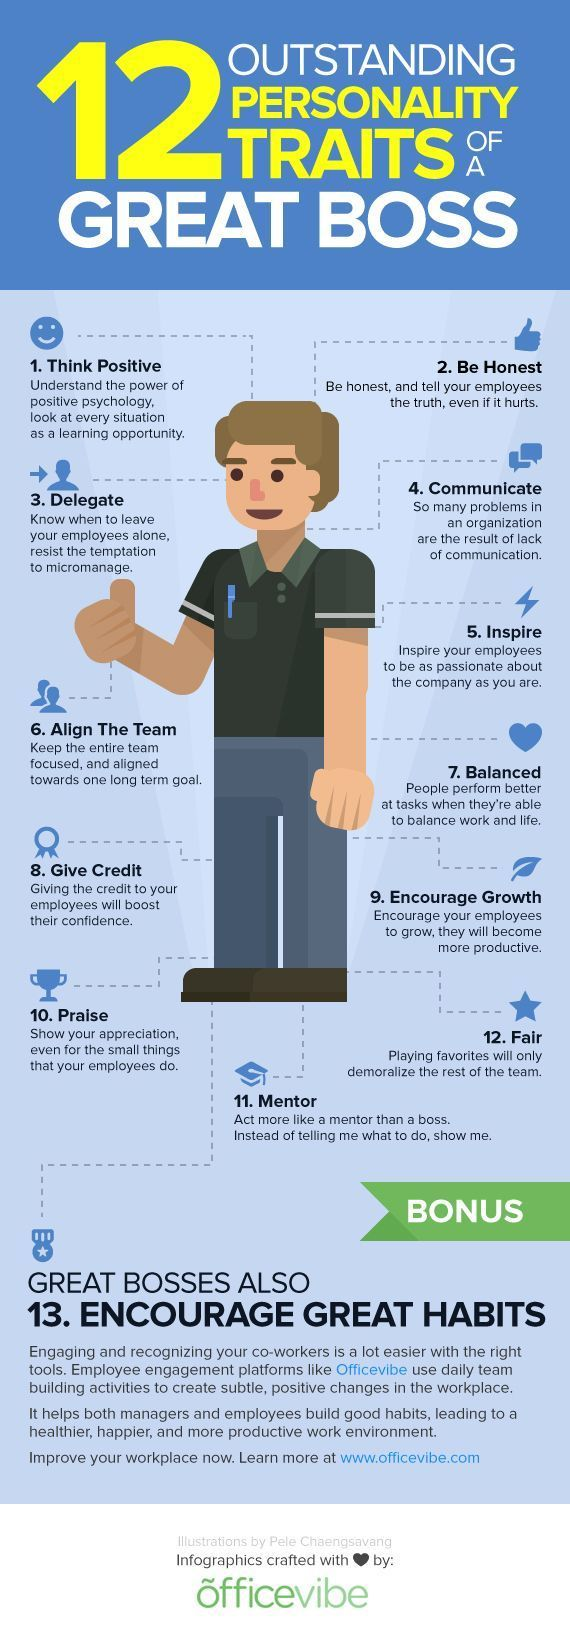 Officevibe, a company dedicated to improving corporate culture through gamification, put together an infographic summarizing what makes a good boss. From always being positive to always being honest, even when it's hard, take a look at the infographic below for an overview of the fundamental personality traits shared by good managers.  #goodmanager